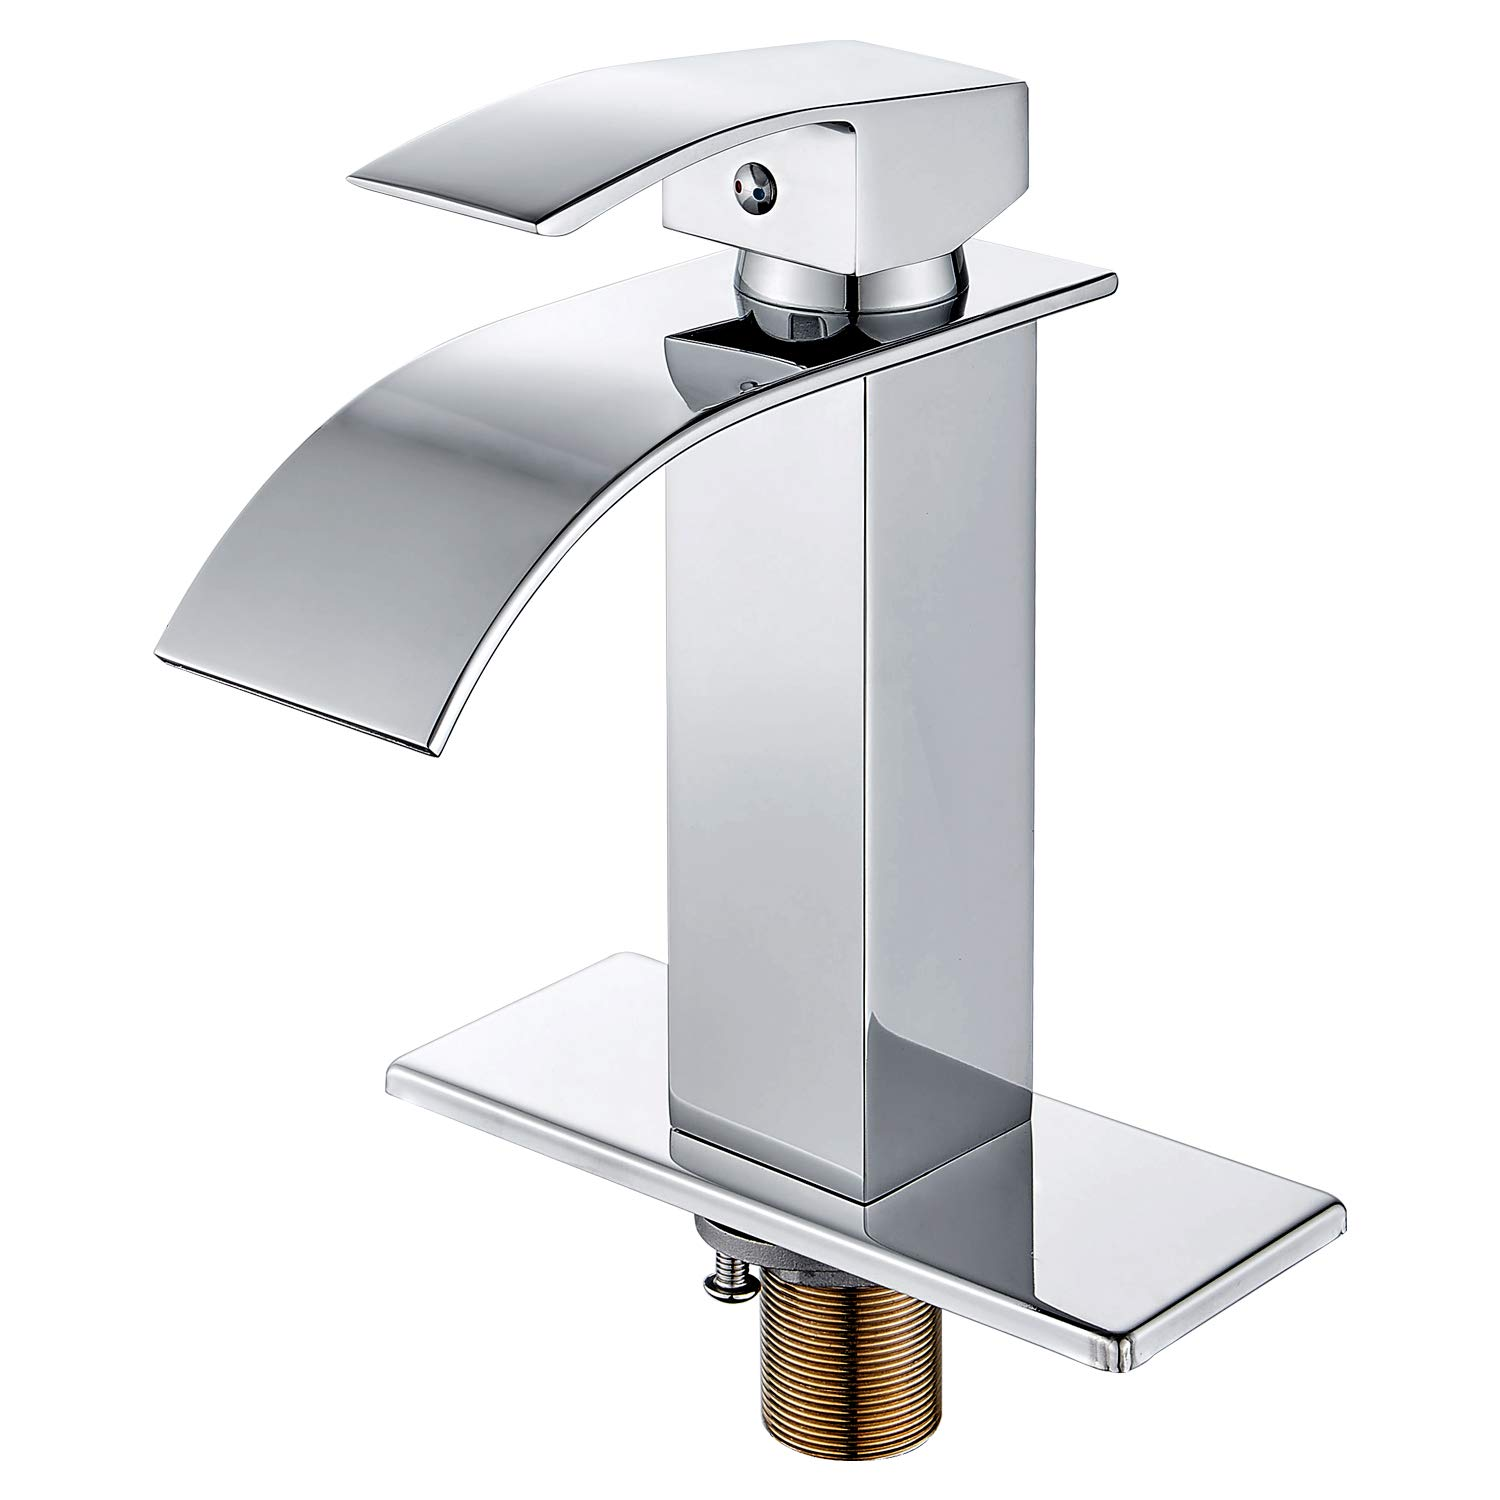 HOROW Chrome Waterfall Bathroom Faucet Single Handle One Hole Deck Mount Lavatory with 4 inch Centerset Deck Plate Escutcheon by HOROW